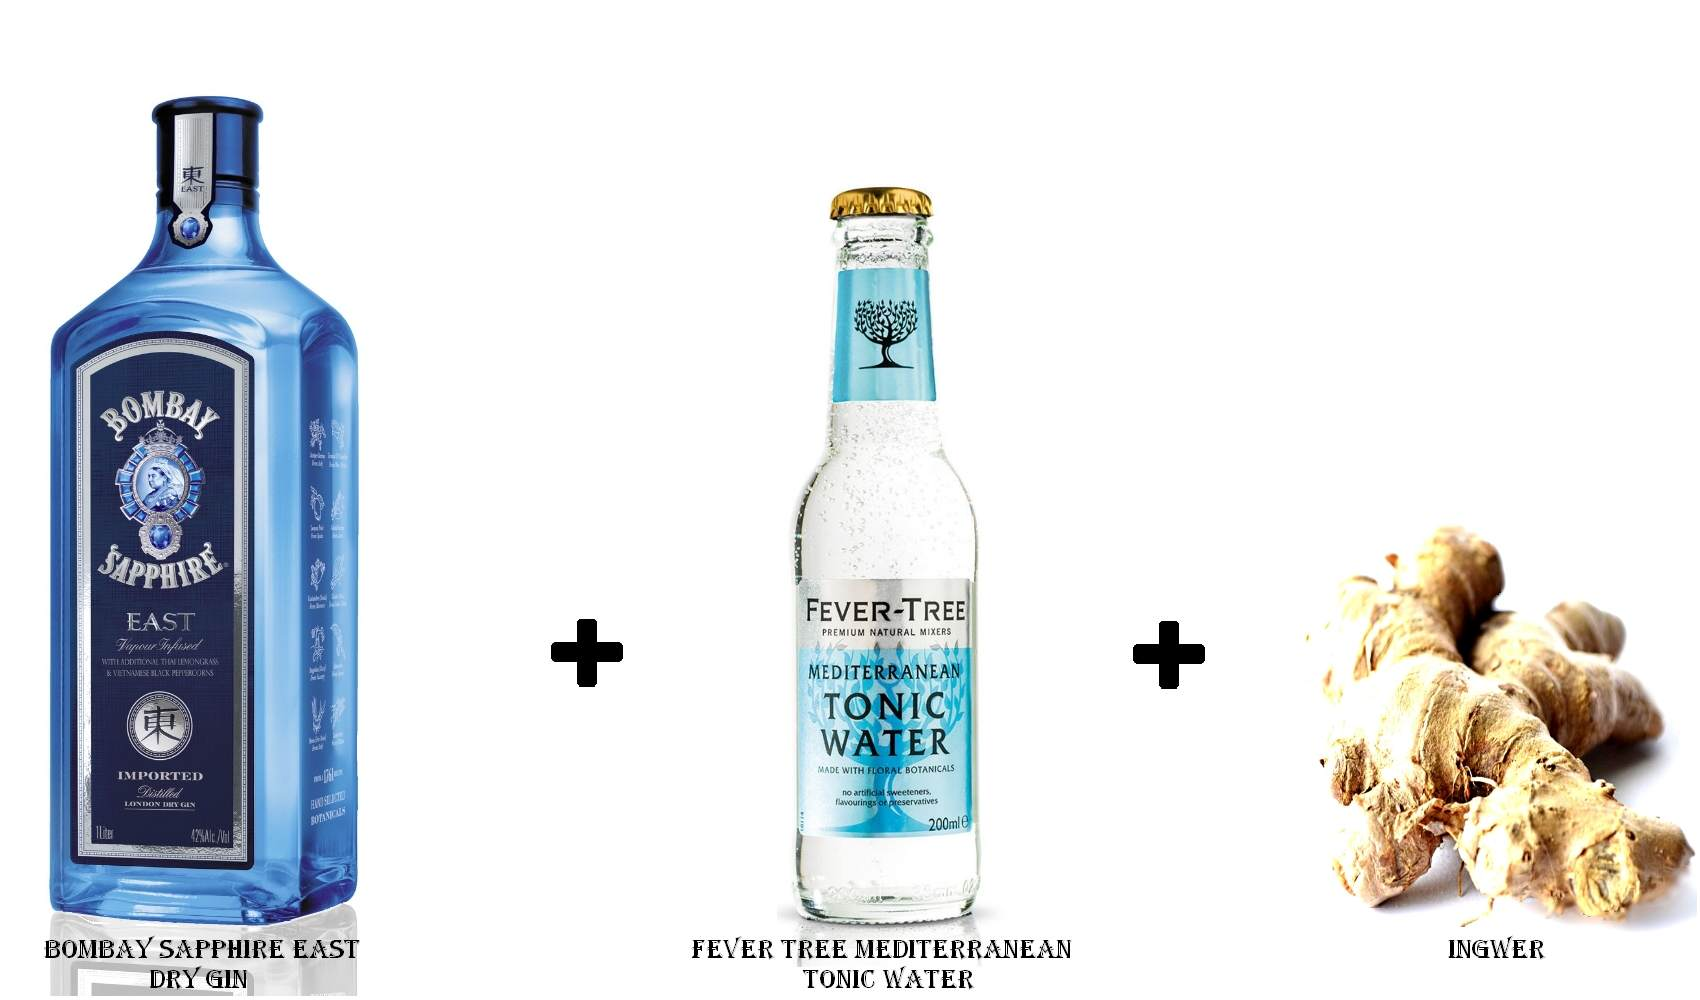 Bombay Sapphire East Dry Gin + Fever Tree Mediterranean Tonic Water + Ingwer